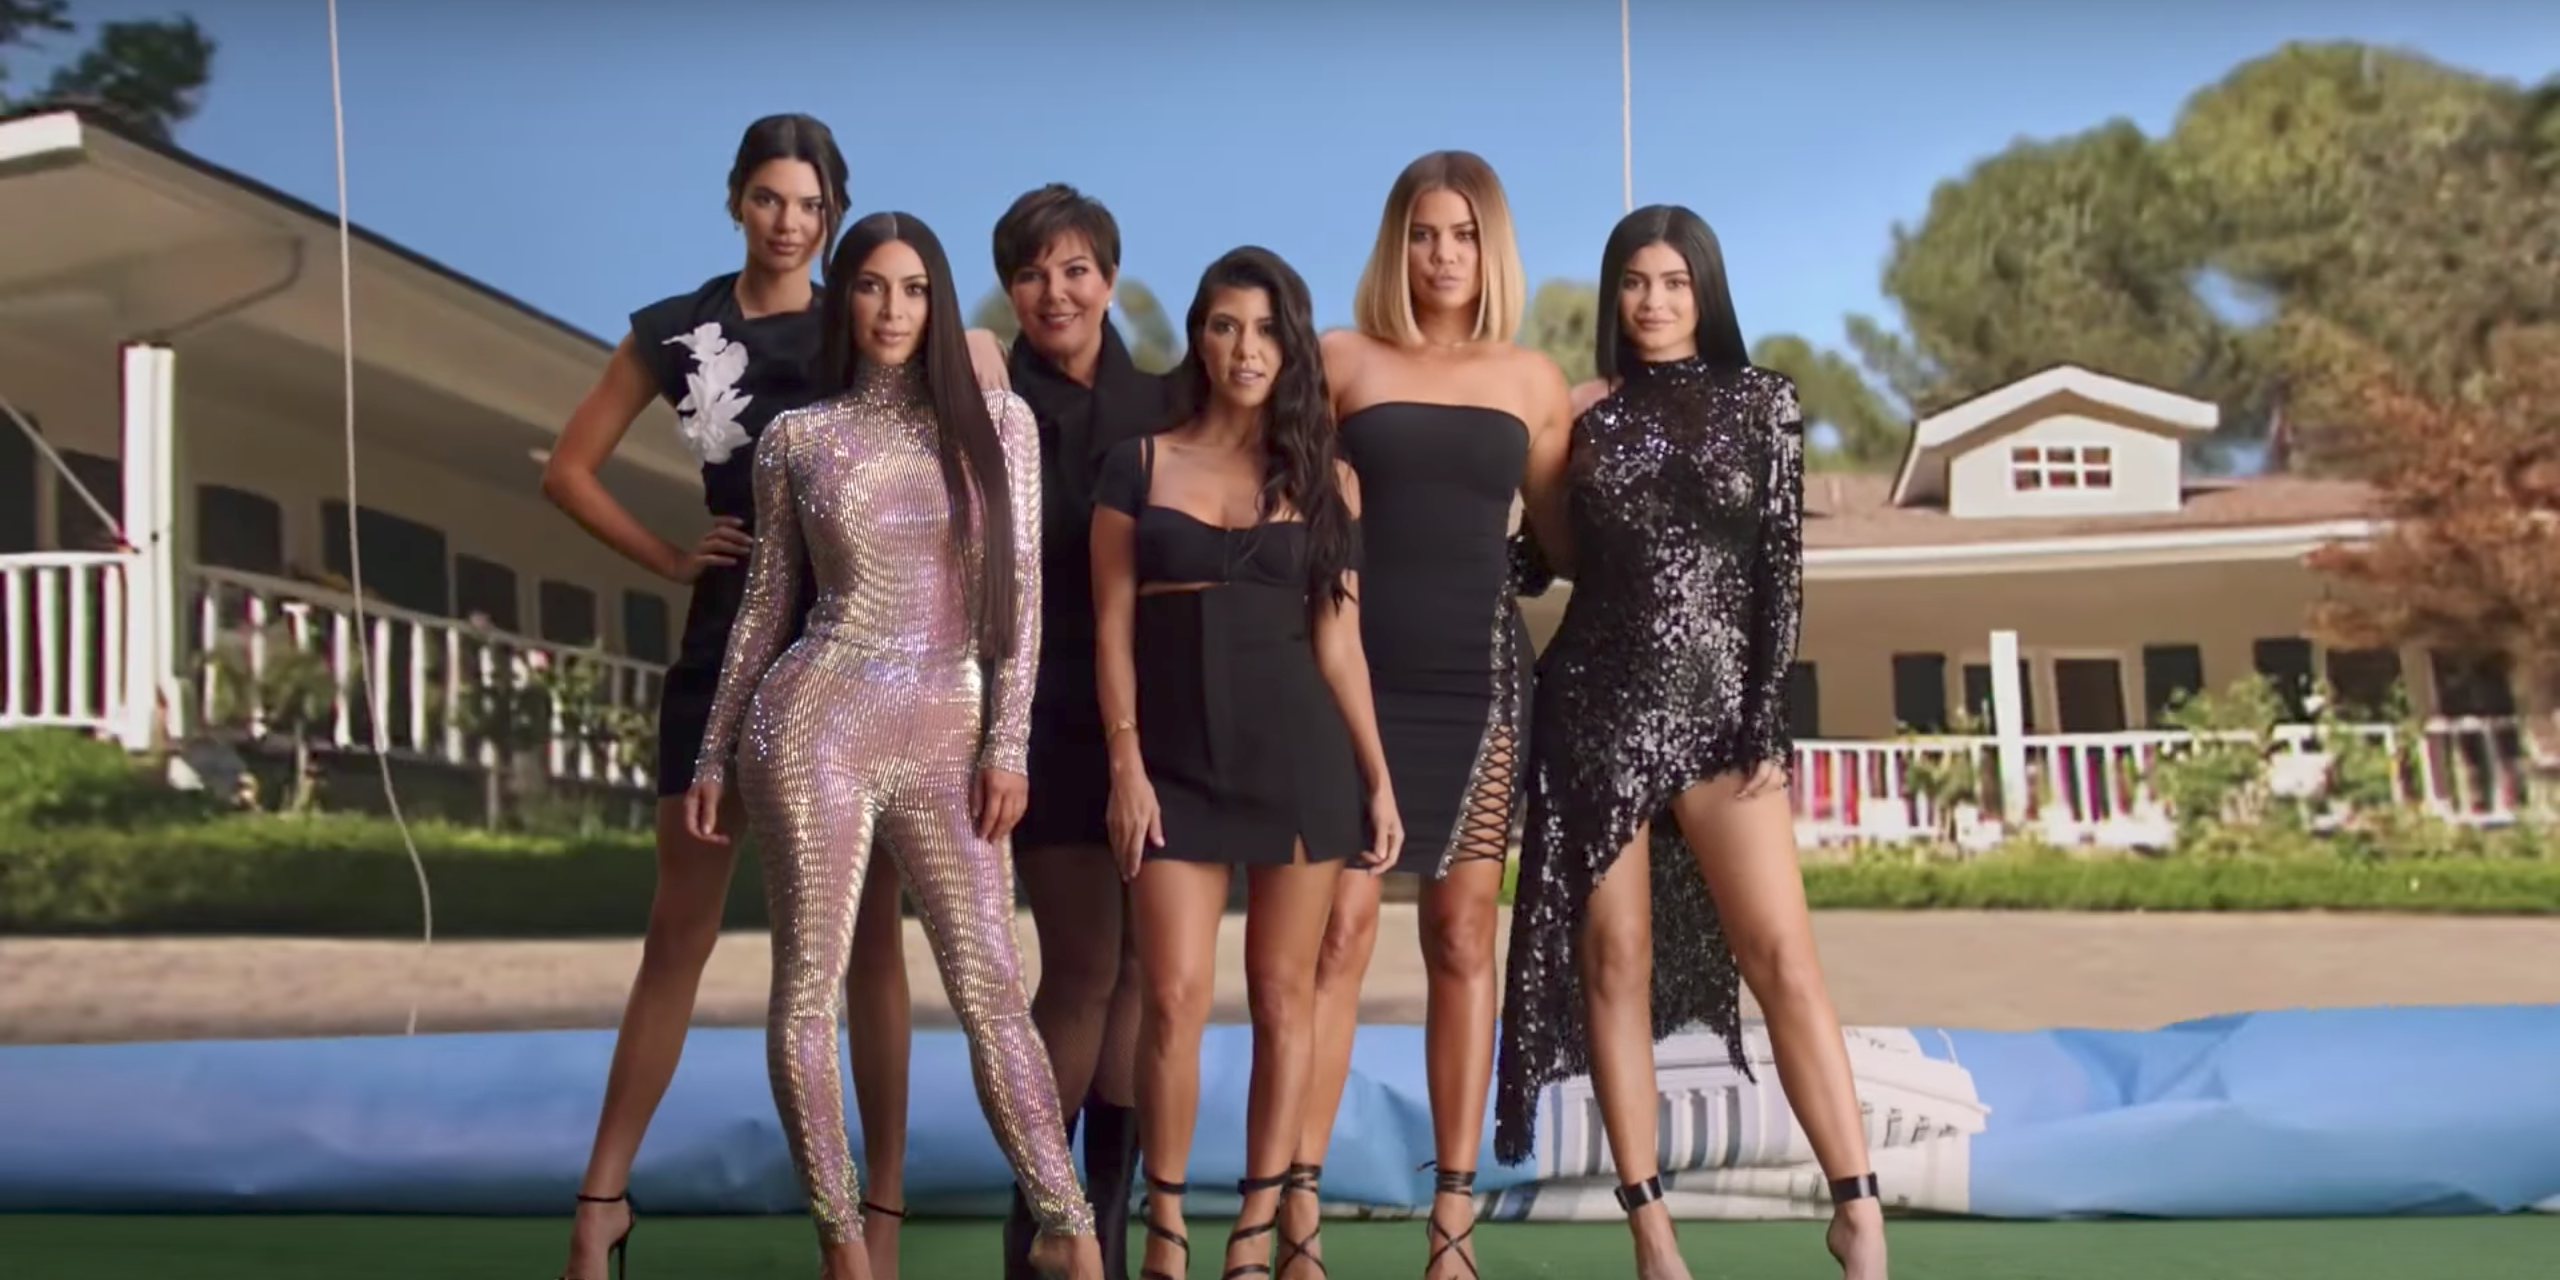 The Fake Home from 'Keeping Up with the Kardashians' Just Sold for MILLIONS